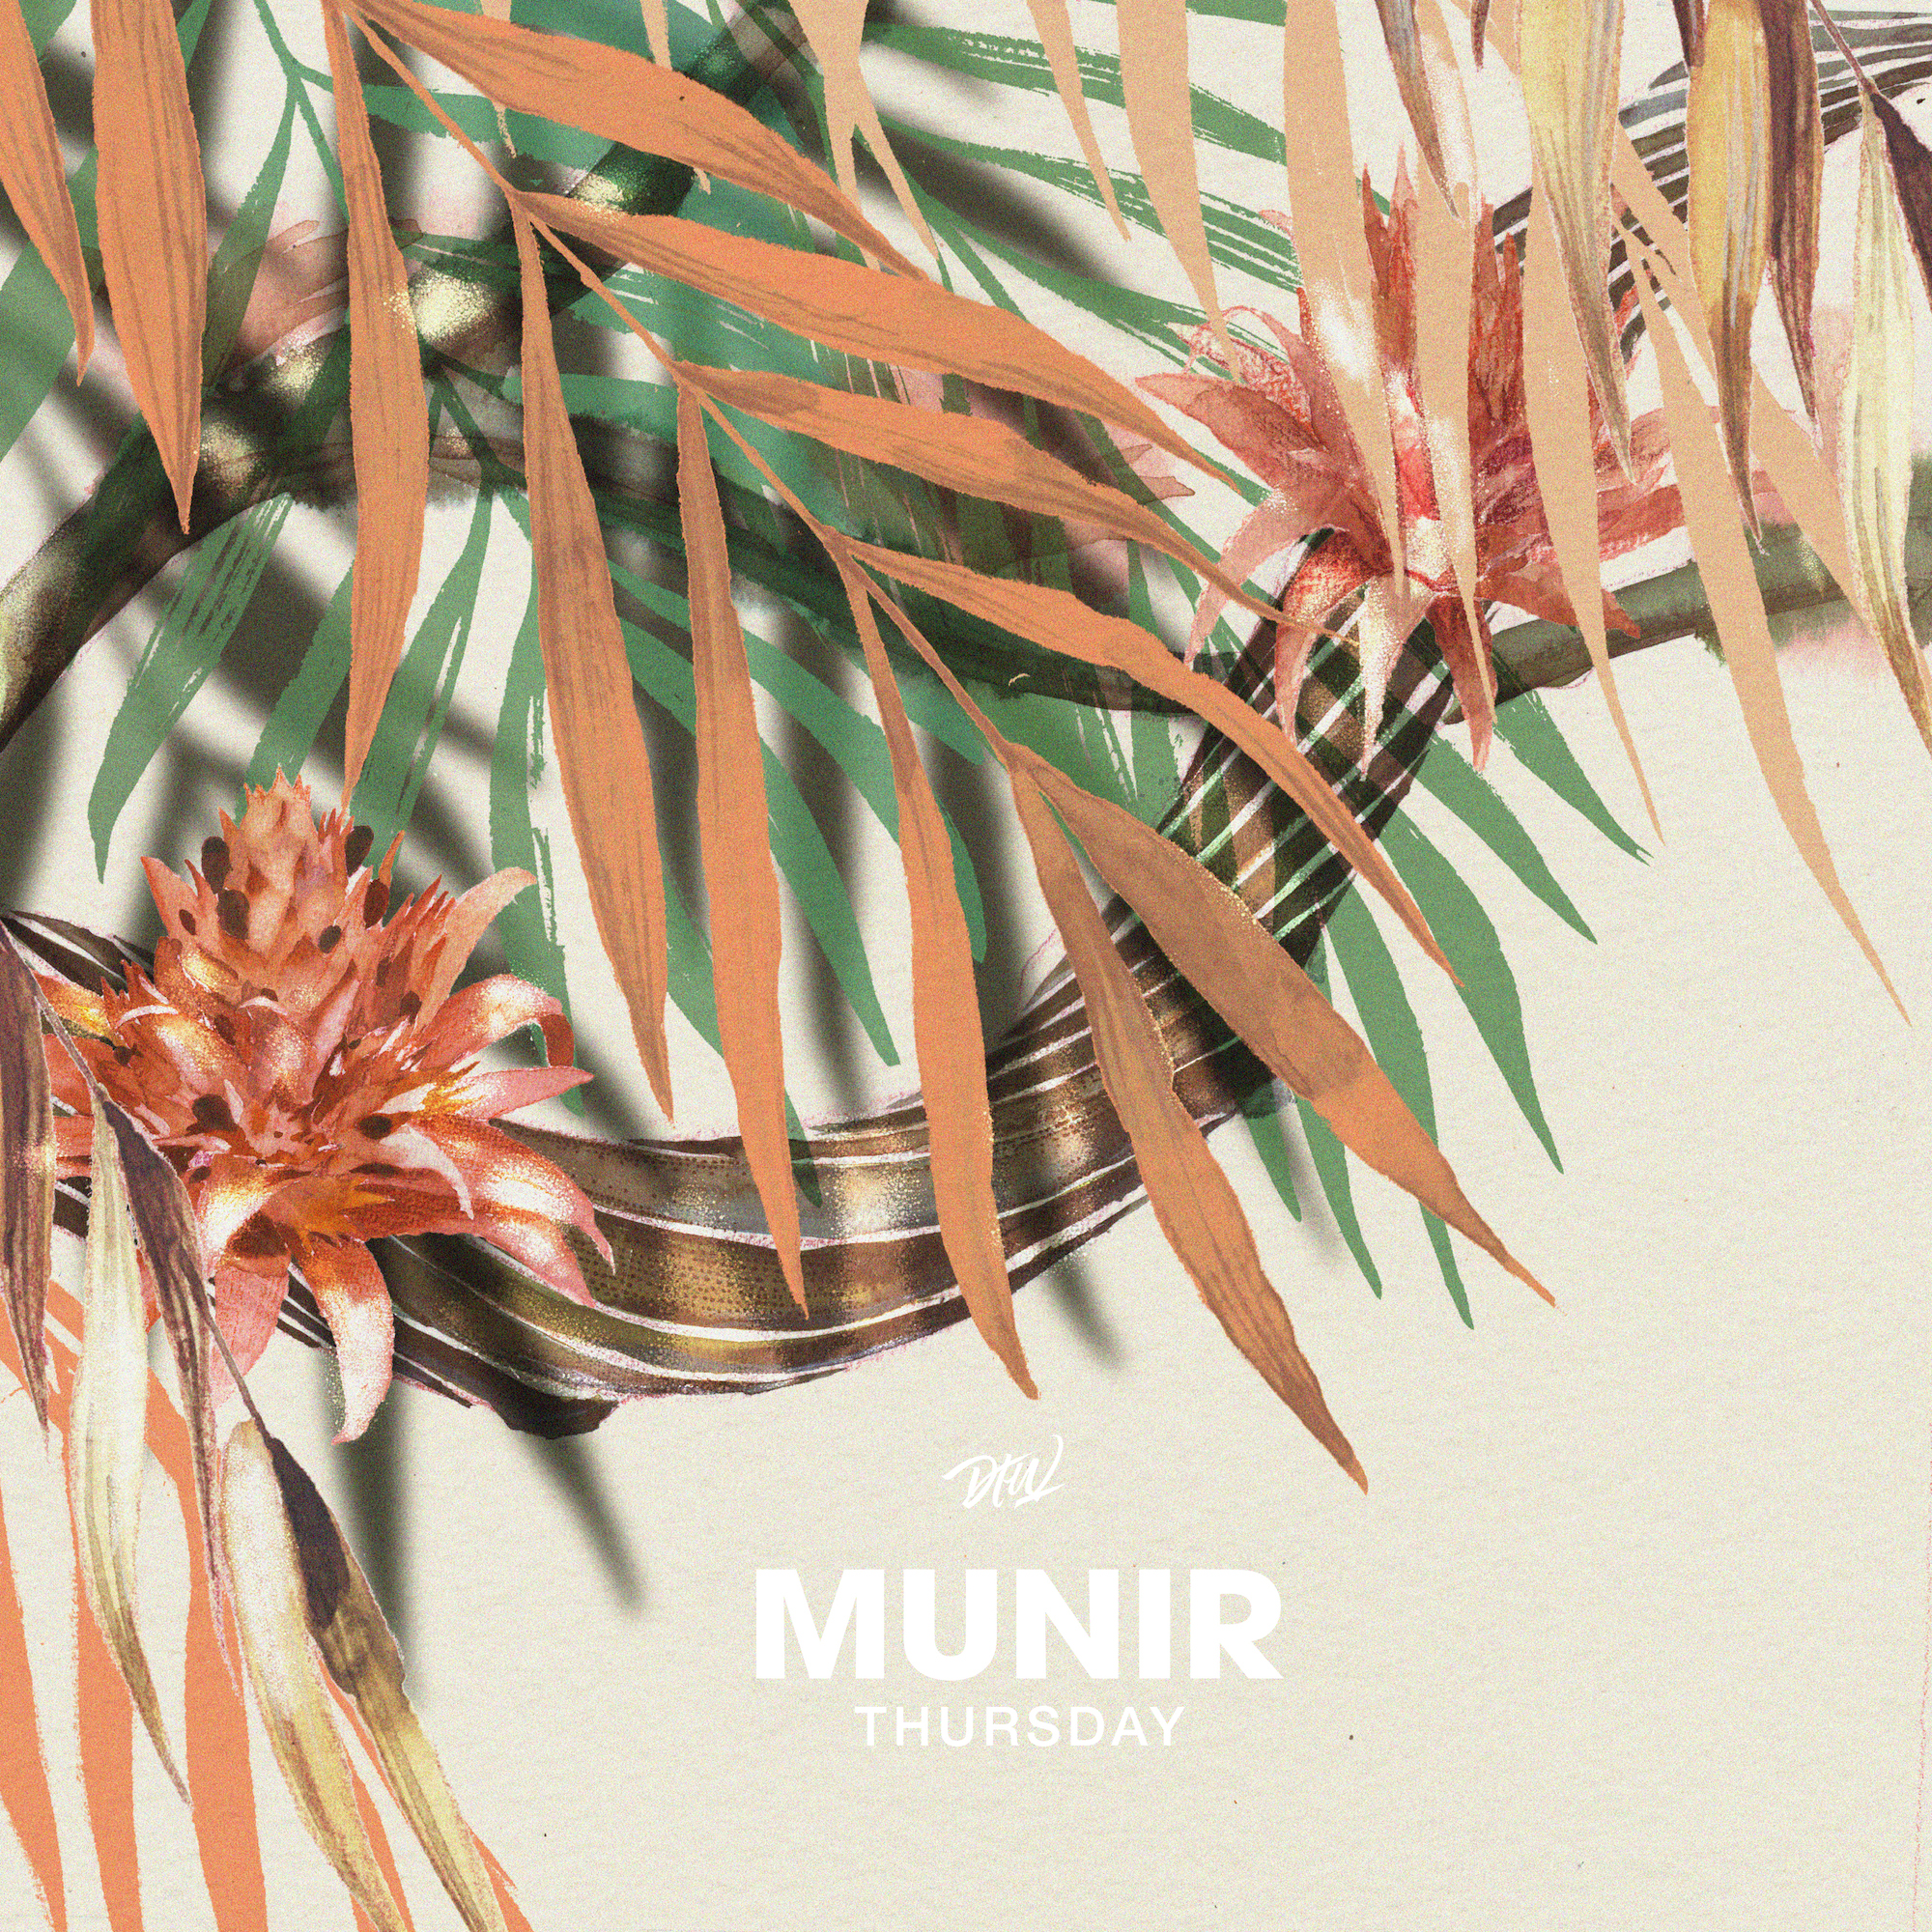 MUNIR ARTWORK (1).jpg